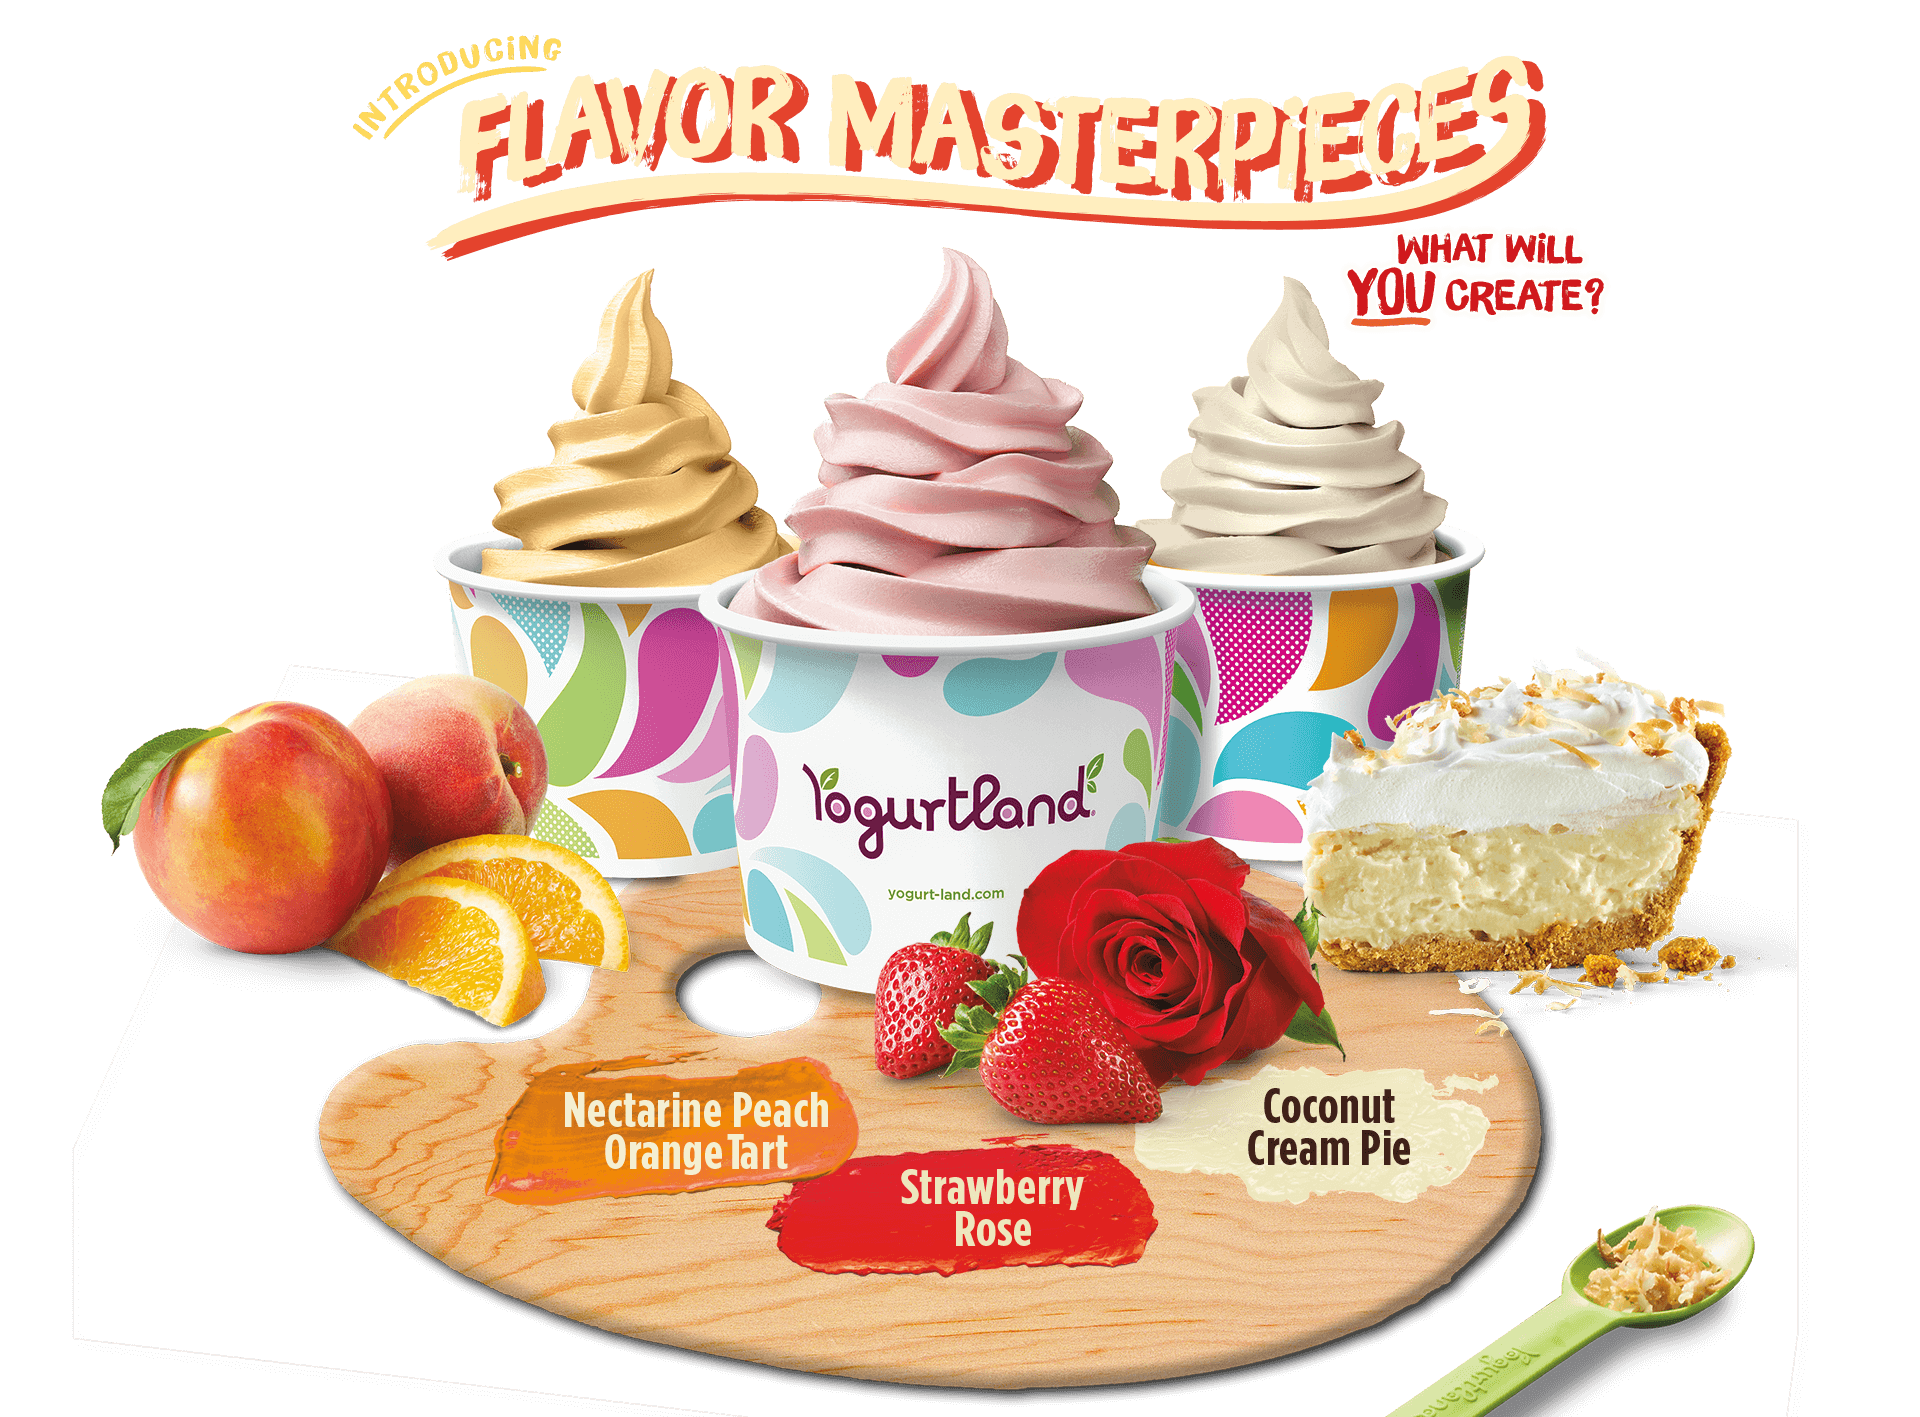 Introducing Flavor Masterpieces! What will you create? Nectarine Peach Orange Tart, Strawberry Rose and Coconut Cream Pie.